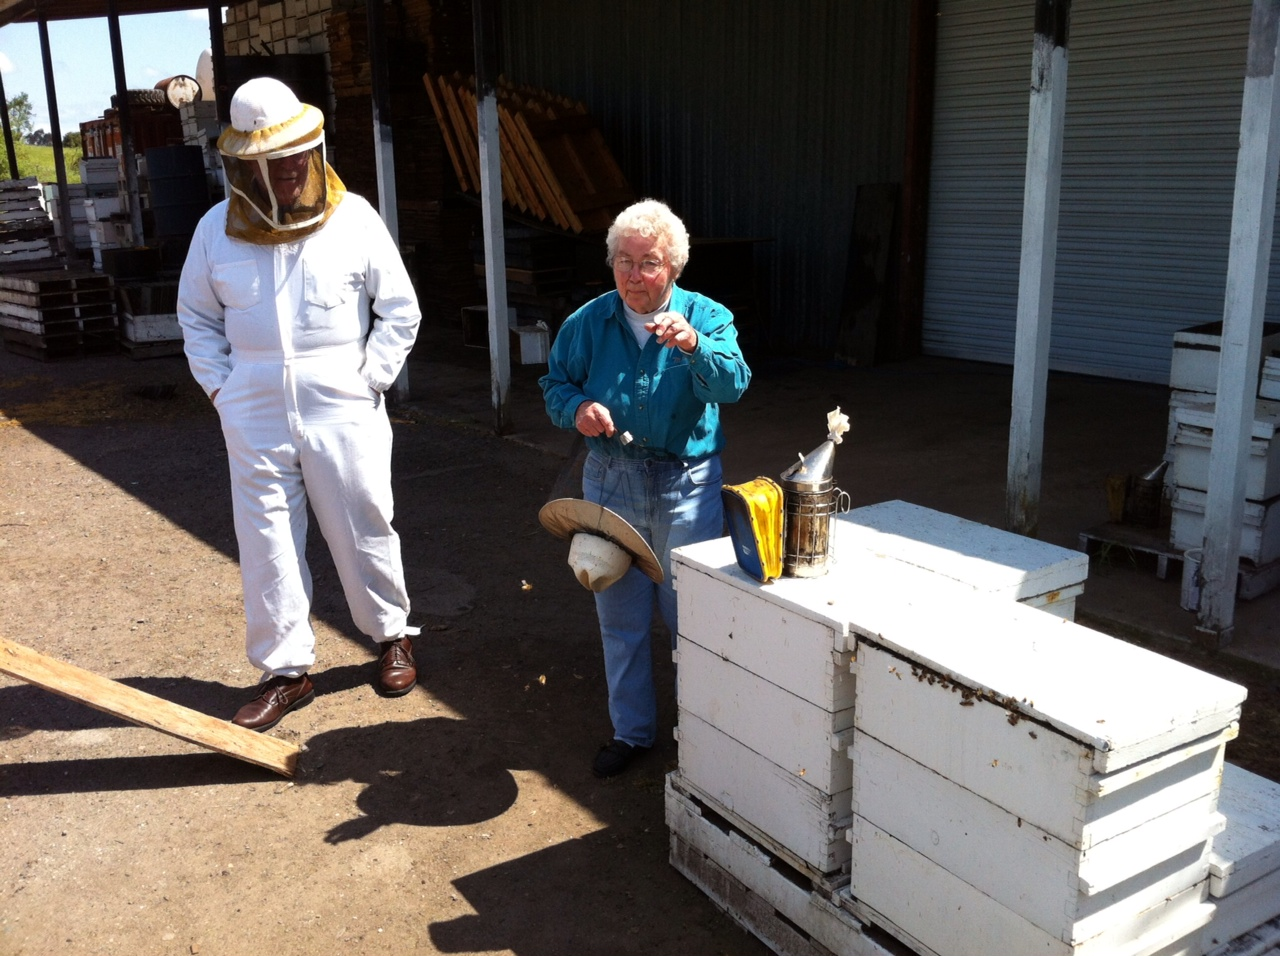 Louise Gentry (right) discusses her beekeeping experience with Dave Aced (left)